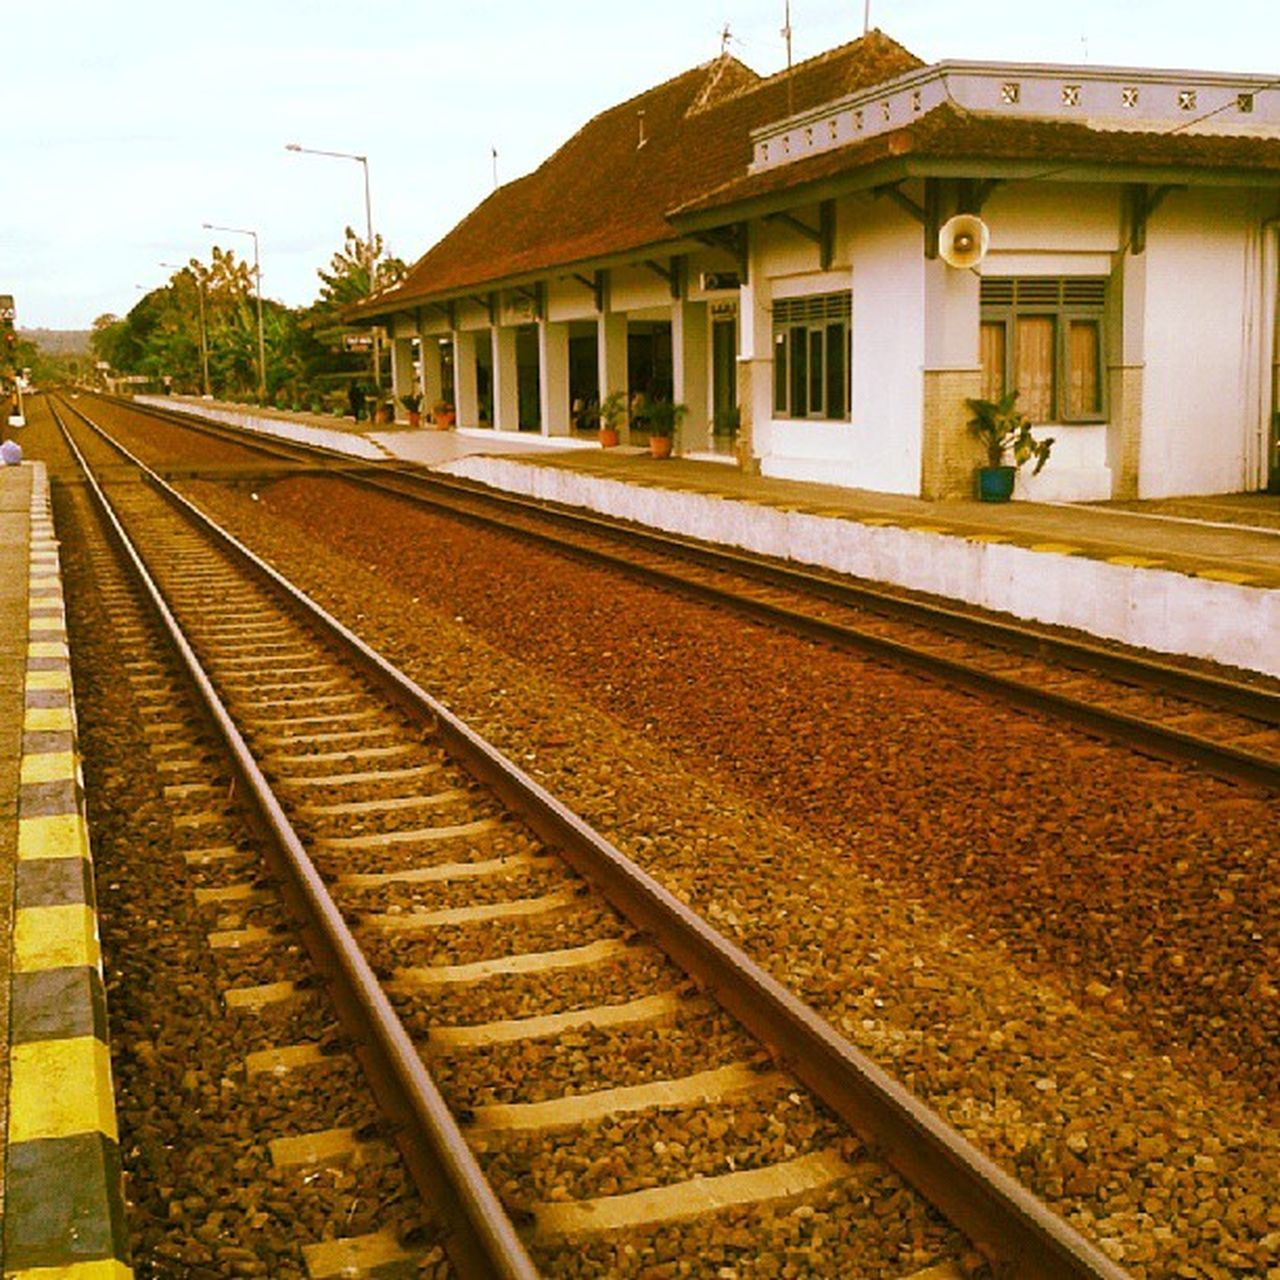 There's no ending Railways Train Station Hometown Wates Kulonprogo Jogja Yogyakarta INDONESIA Instagood Instamoment Webstagram Photooftheday Webstapick Road End Ending Travel Transportation Vacation